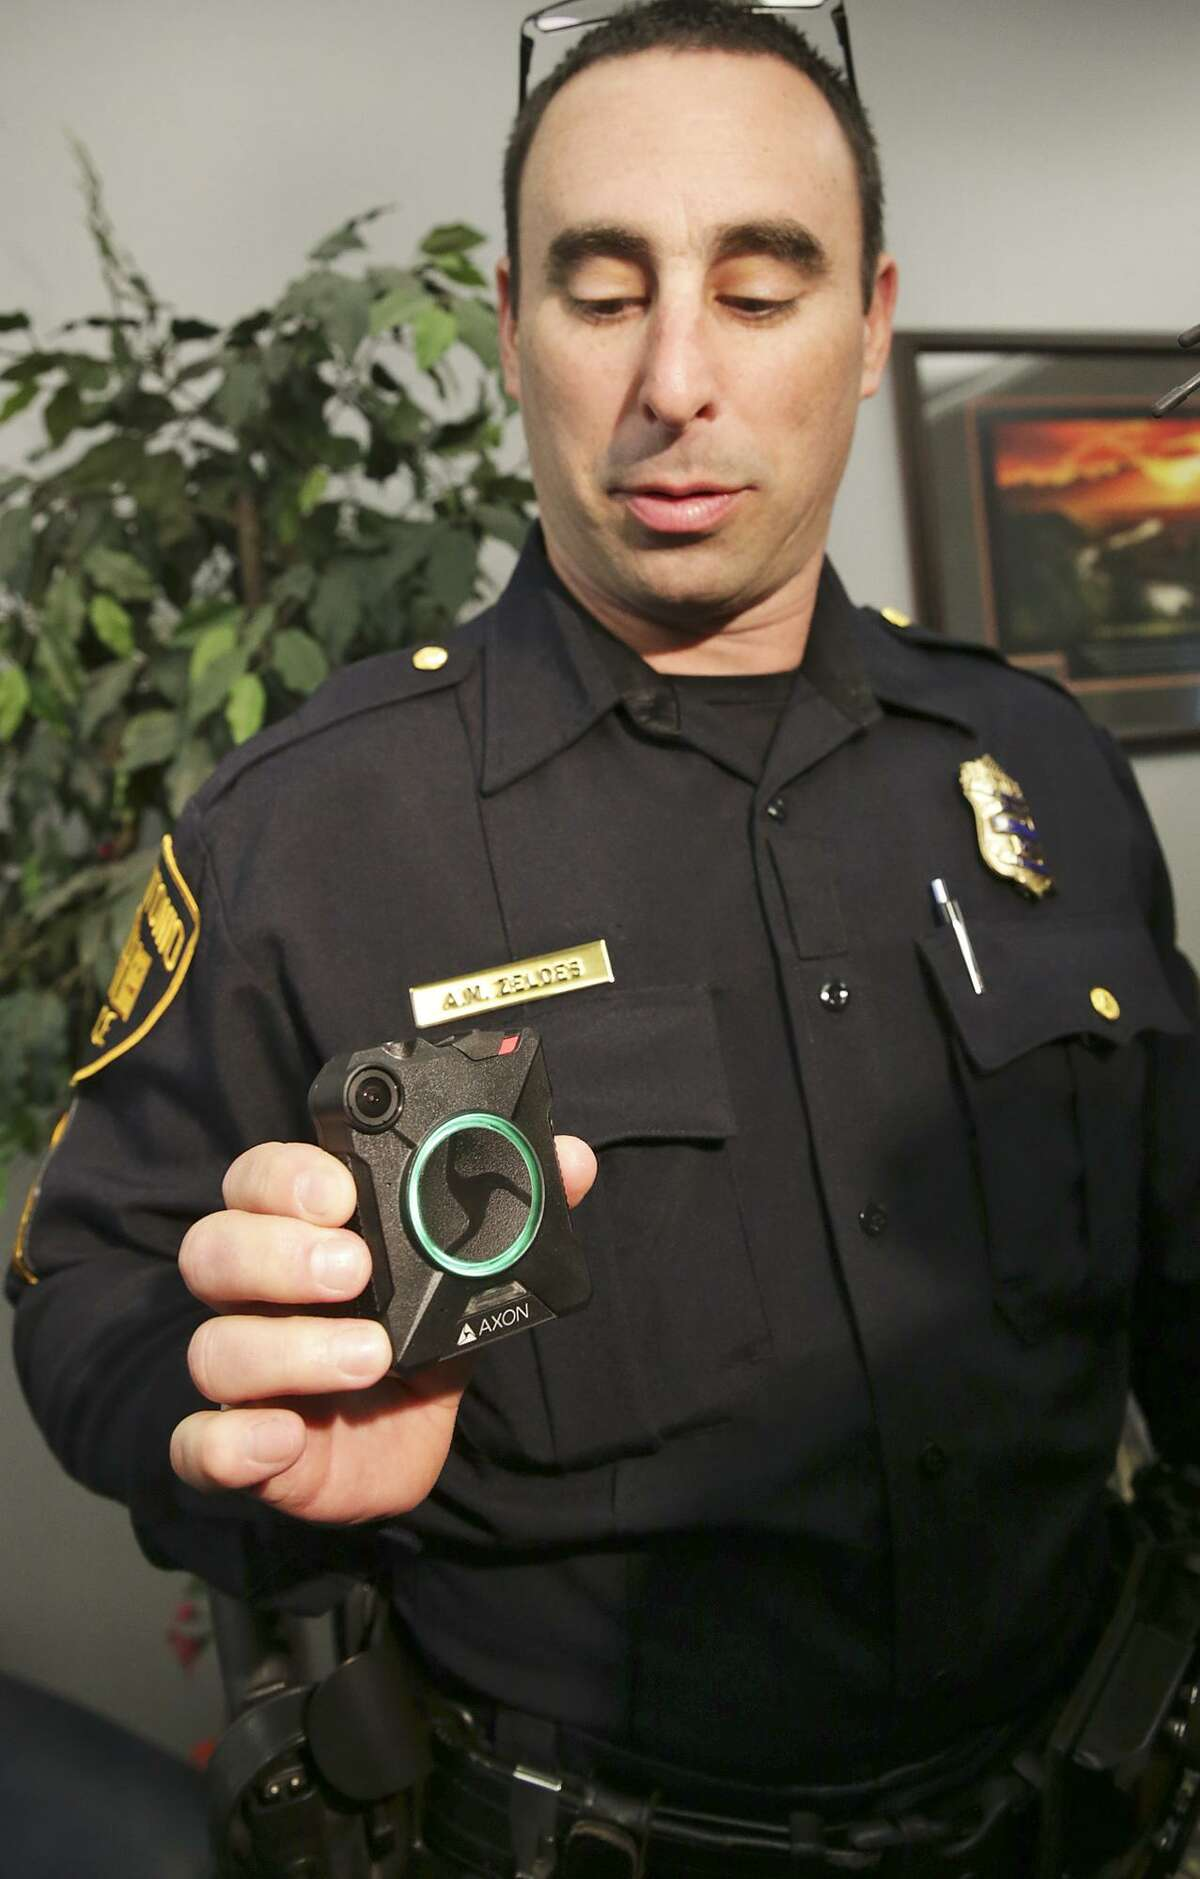 Sgt. Adam Zeldes displays his body-worn camera during a demonstration of the new equipment on Feb. 17, 2016 . A recent report by The Leadership Conference and Upturn found that four of the San Antonio Police Department's policies regulating body-worn cameras fail to meet civil-rights safeguards.